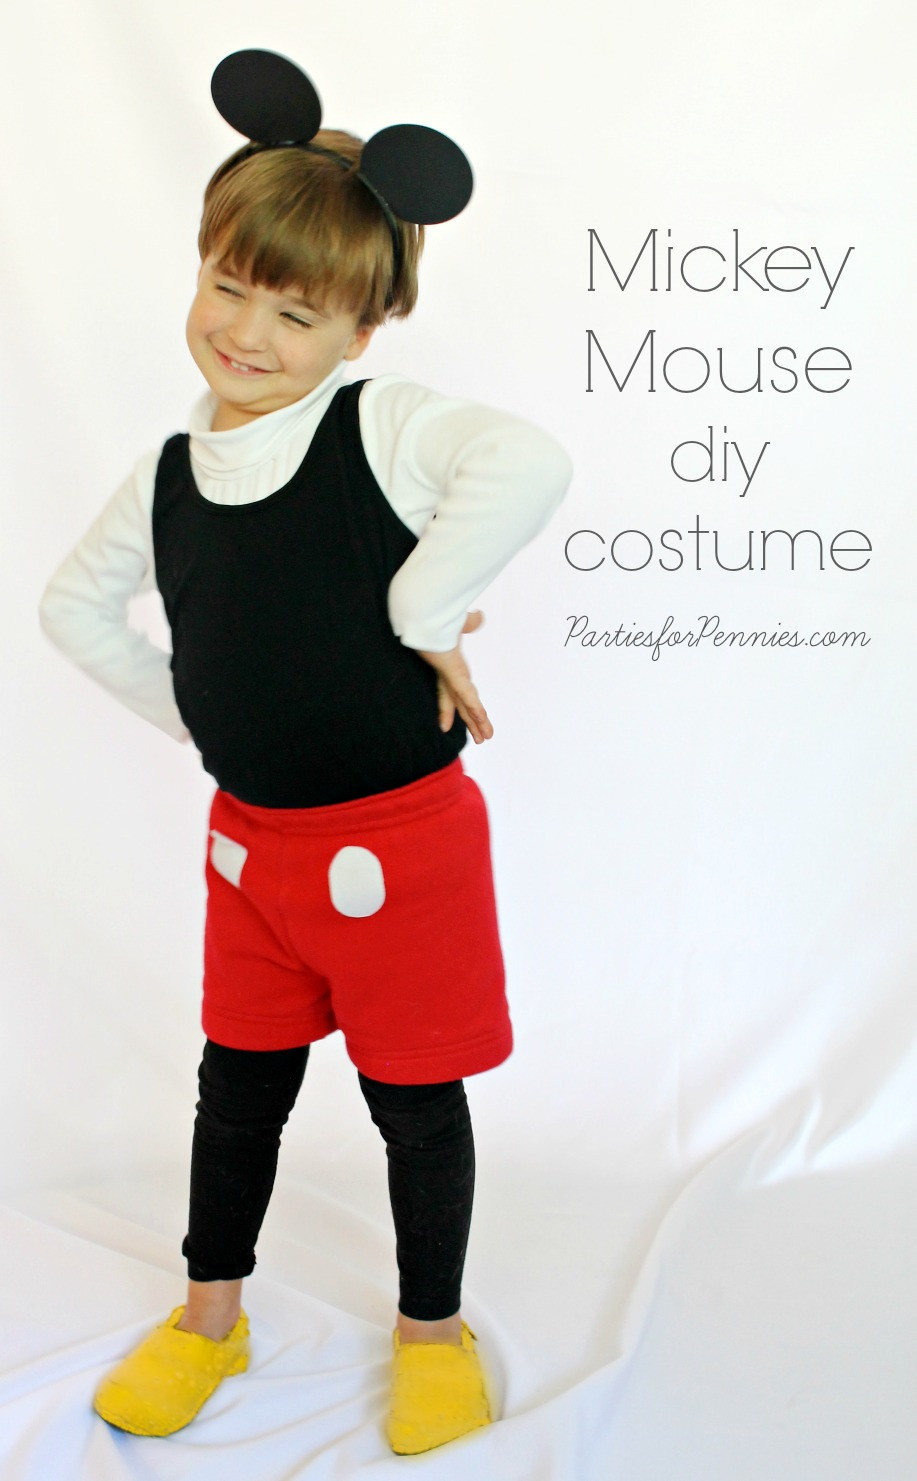 Mickey Mouse Costume DIY  DIY Halloween Costumes Parties for Pennies